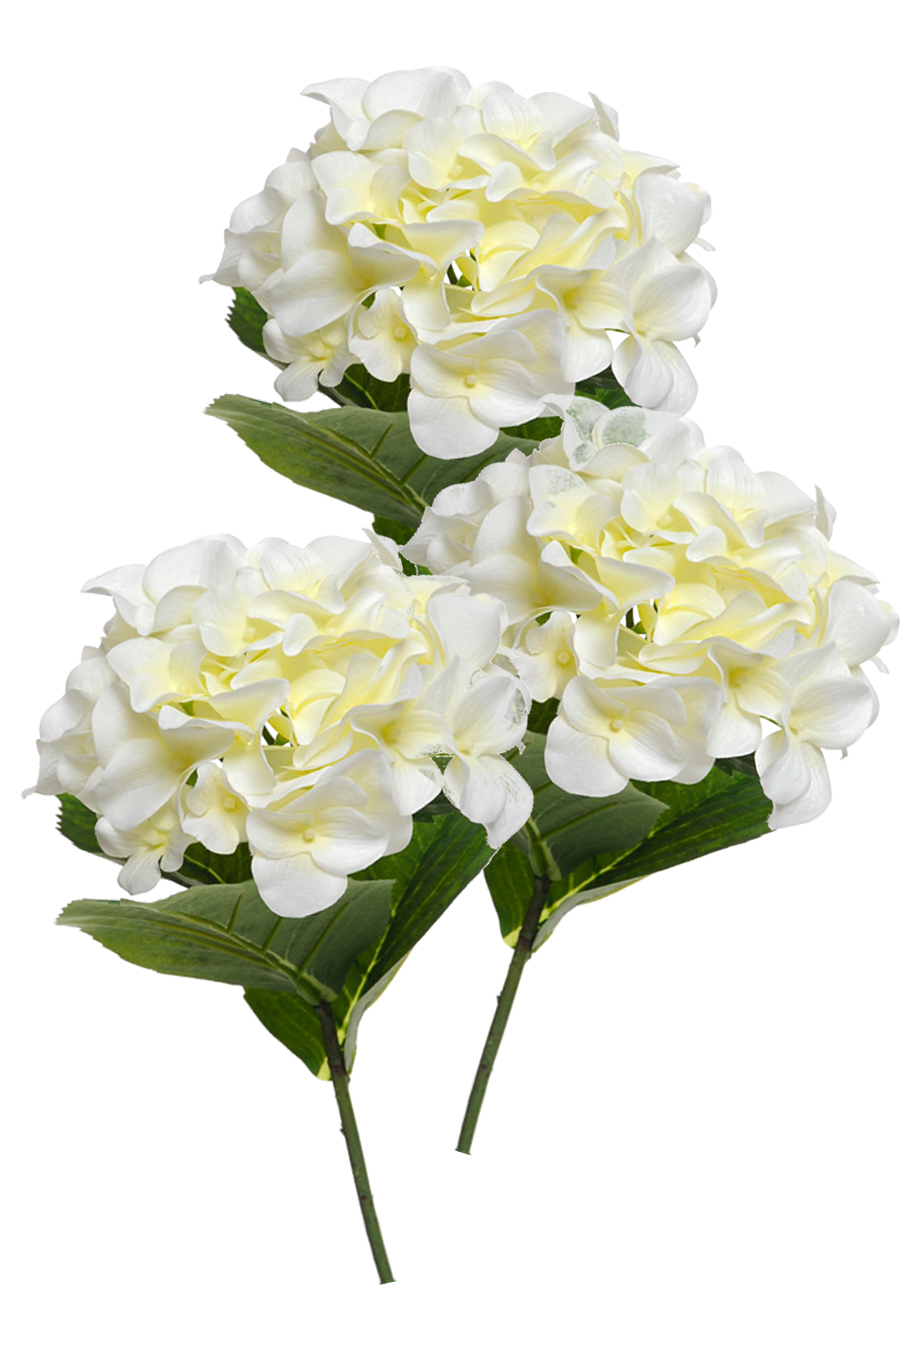 hydrangea cream 3 silk flowers artificial arrangements. Black Bedroom Furniture Sets. Home Design Ideas